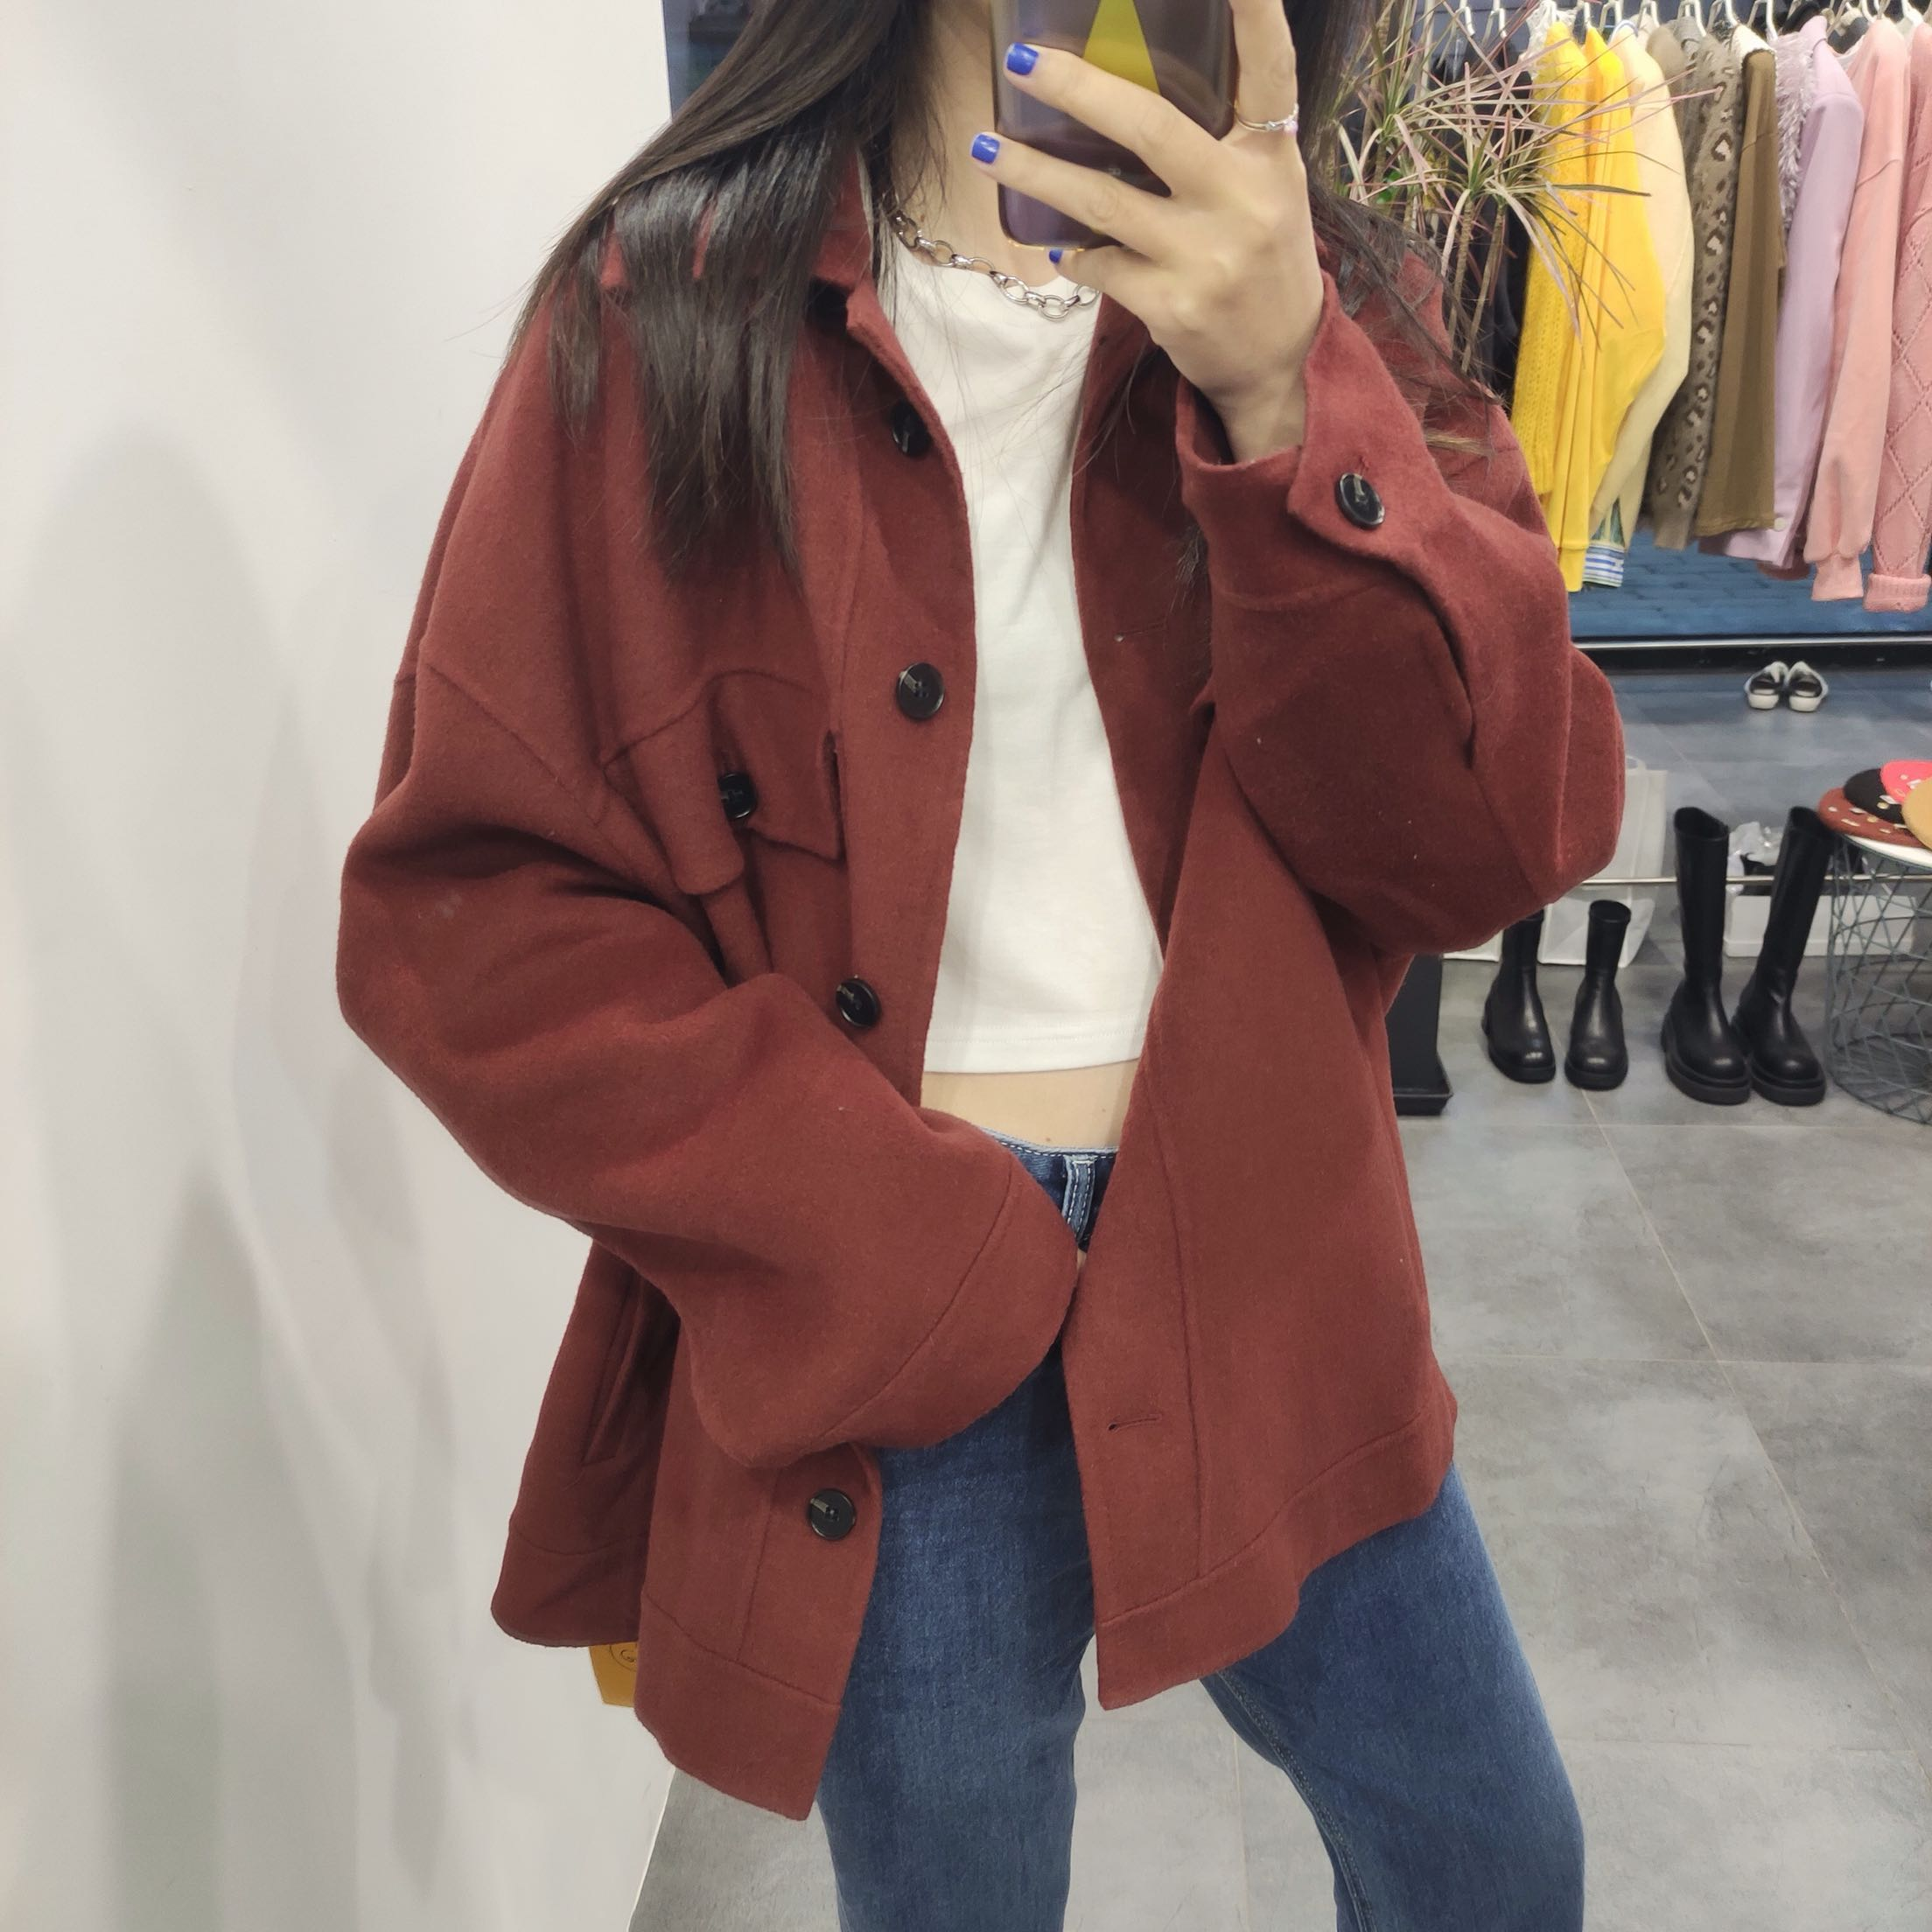 Xtive autumn and winter new fashionable lapel pocket jacket wool double faced tweed loose and thin versatile coat coat